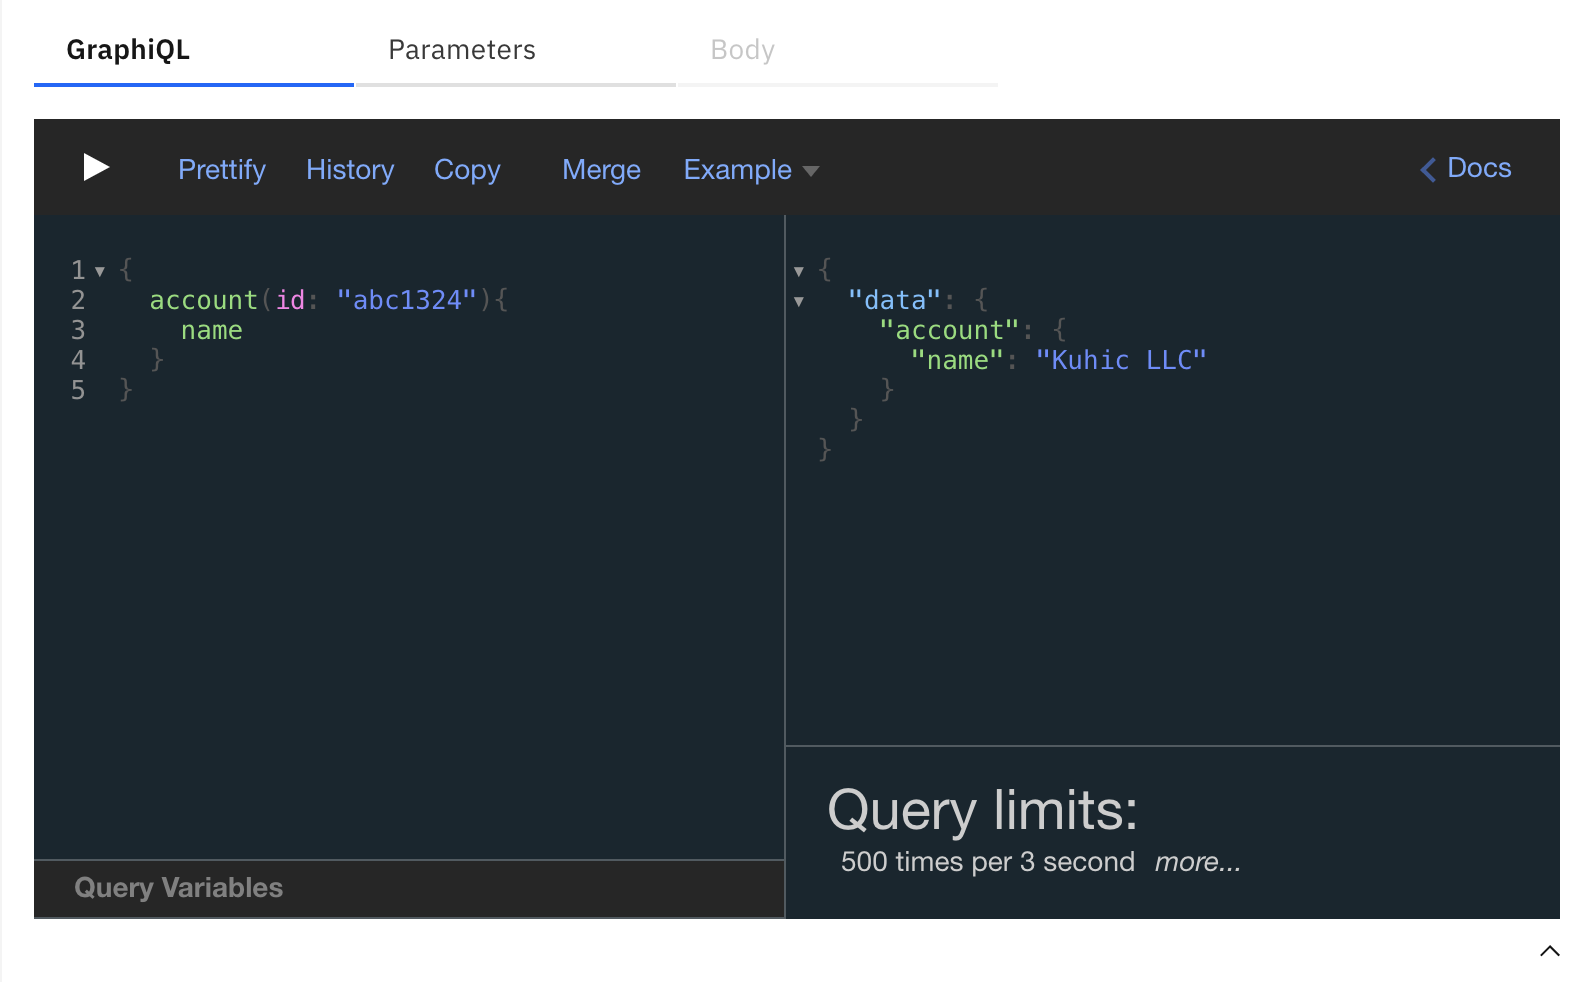 GraphiQL with small GraphQL query limited to 500 transactions per 3 seconds